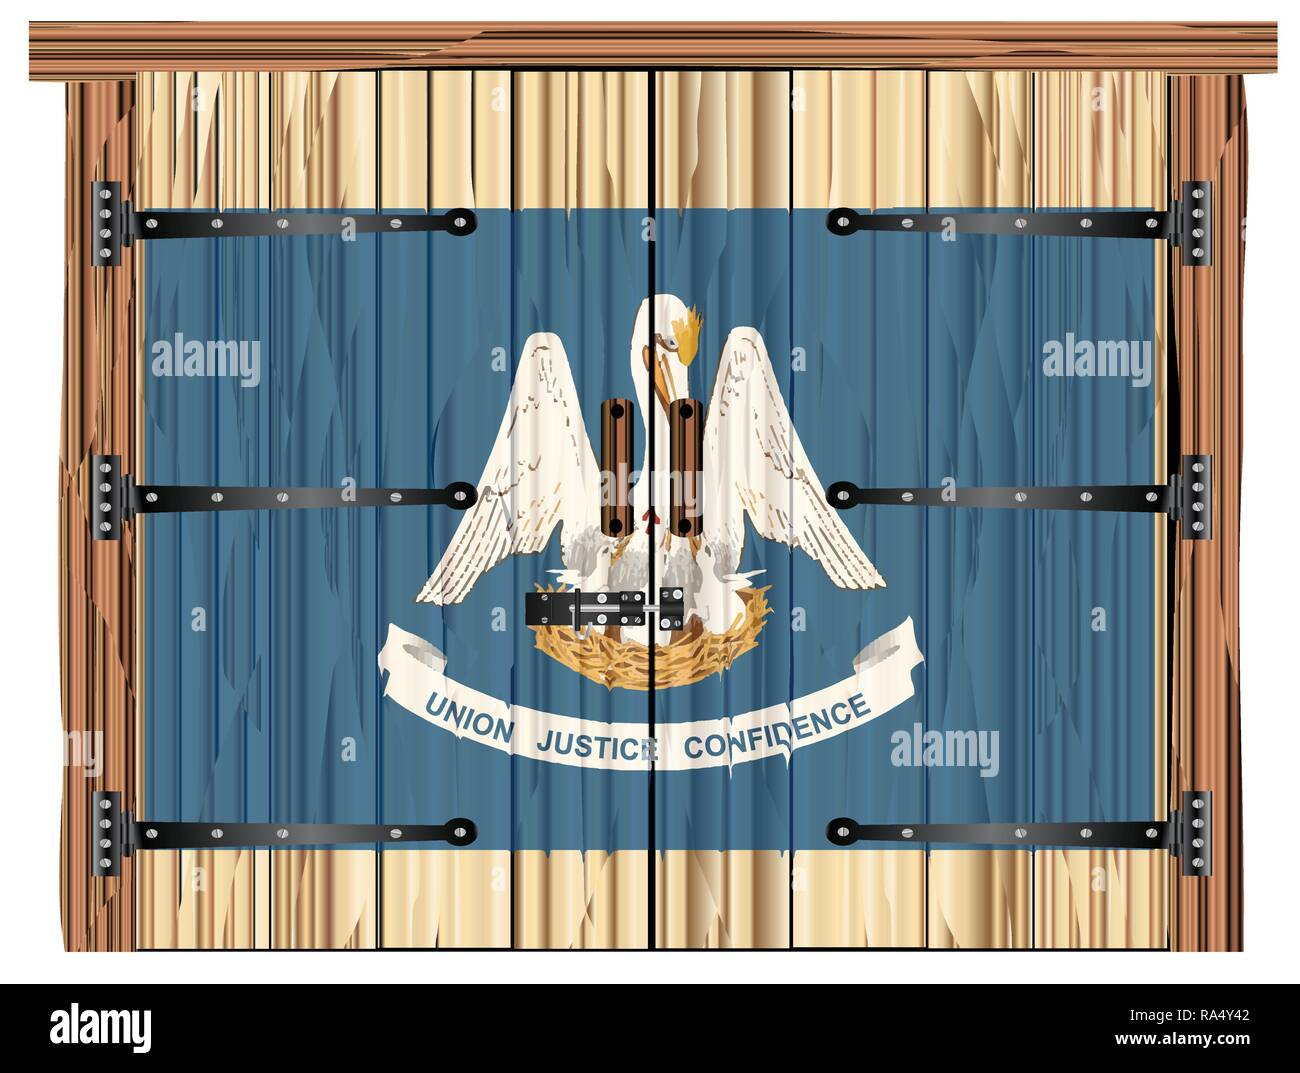 A Large Closed Wooden Barn Double Door With Bolt And Hinges And The